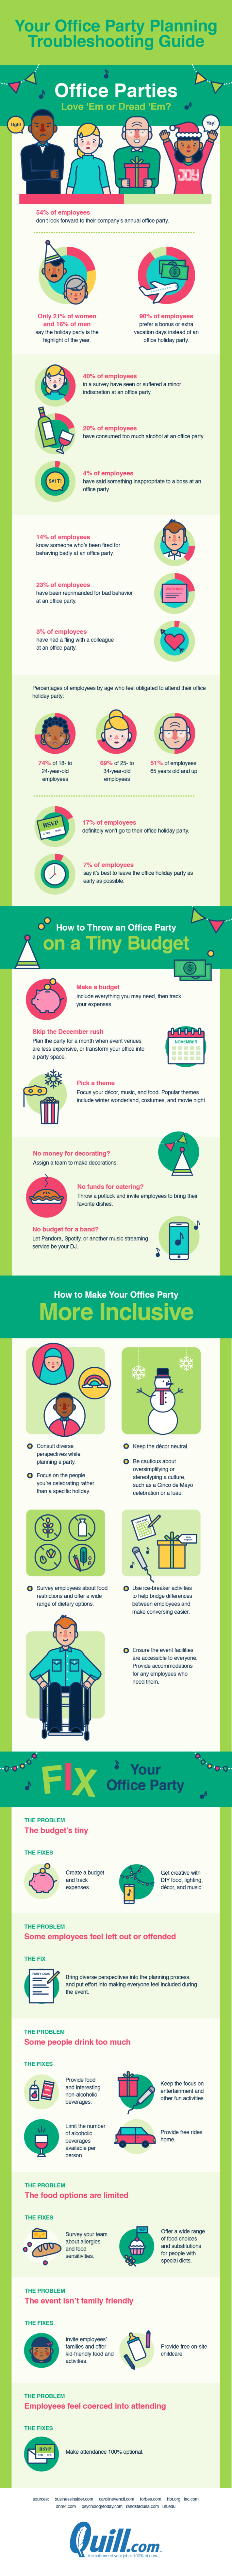 Your office party planning troubleshooting guide